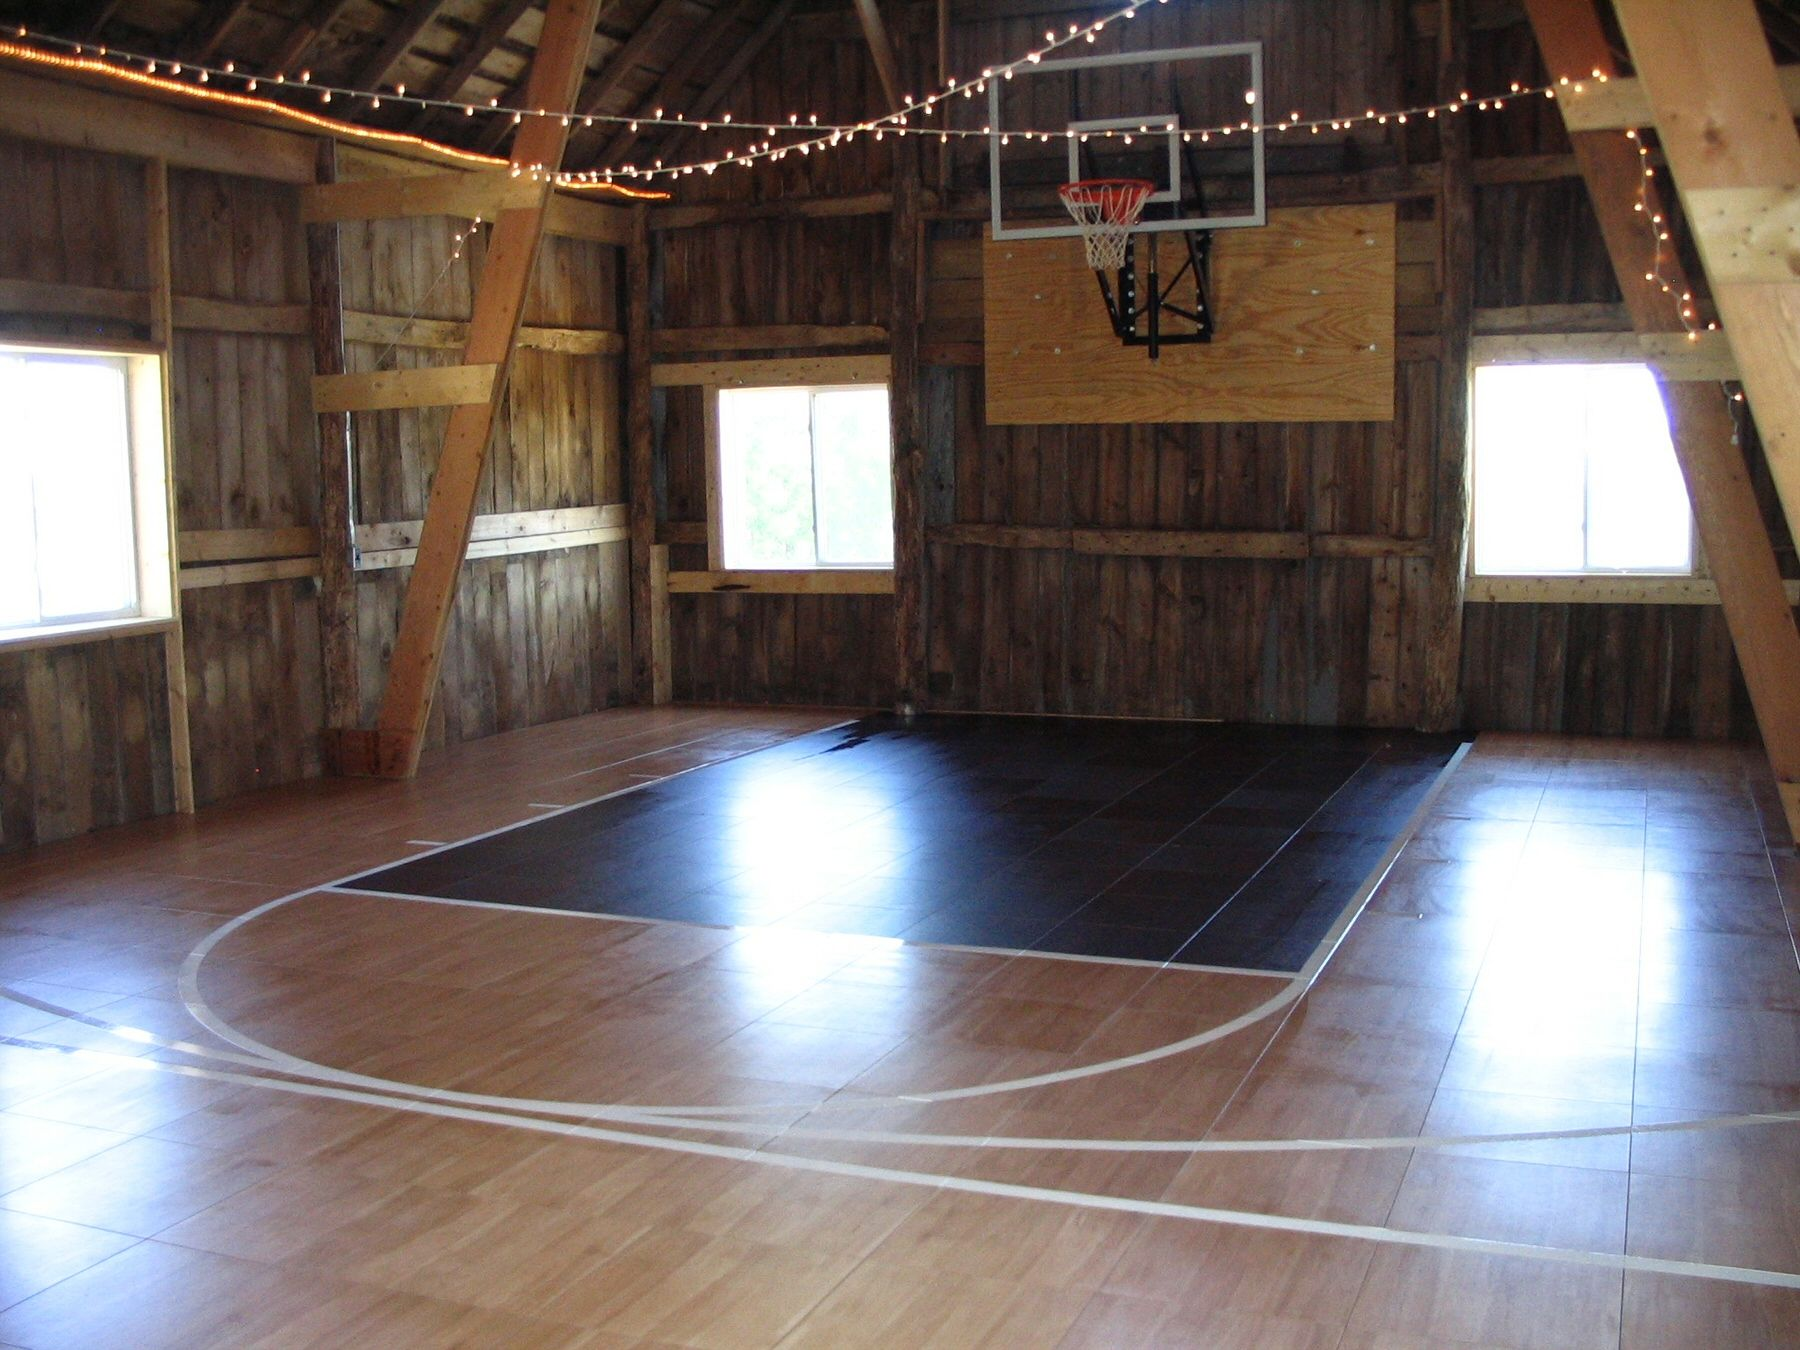 How much to build a basketball court in backyard how much for How much does it cost to build indoor basketball court